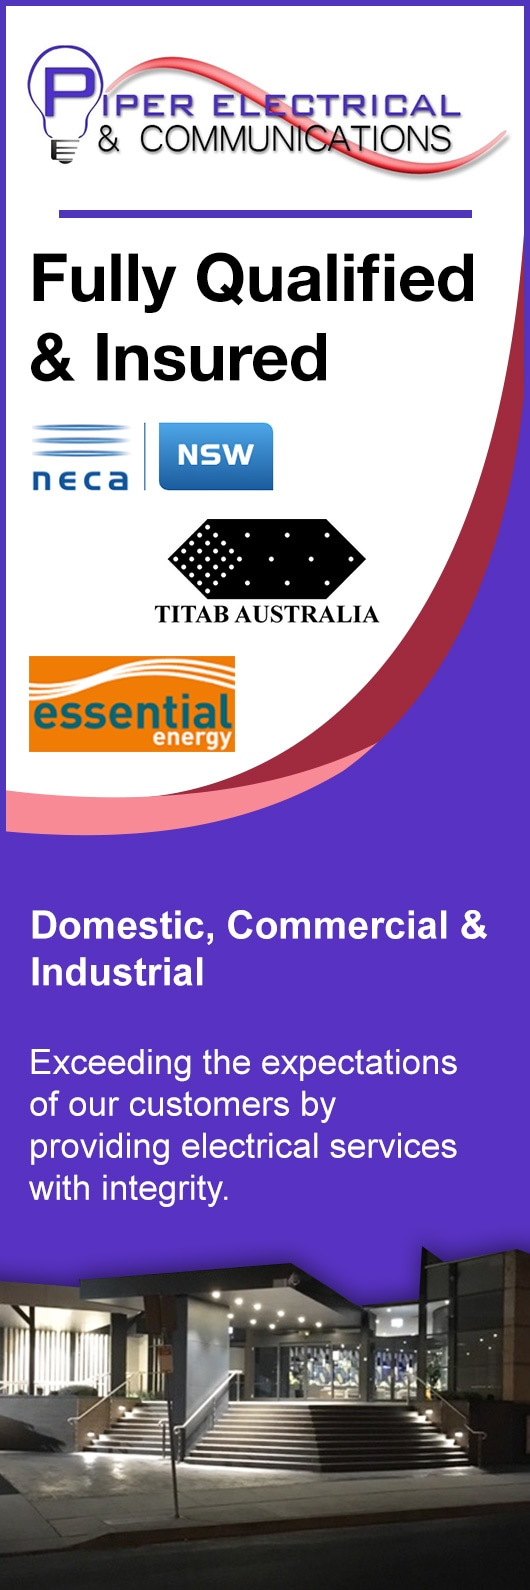 Piper Electrical Communications Electricians Residential Wiring Australia Promotion